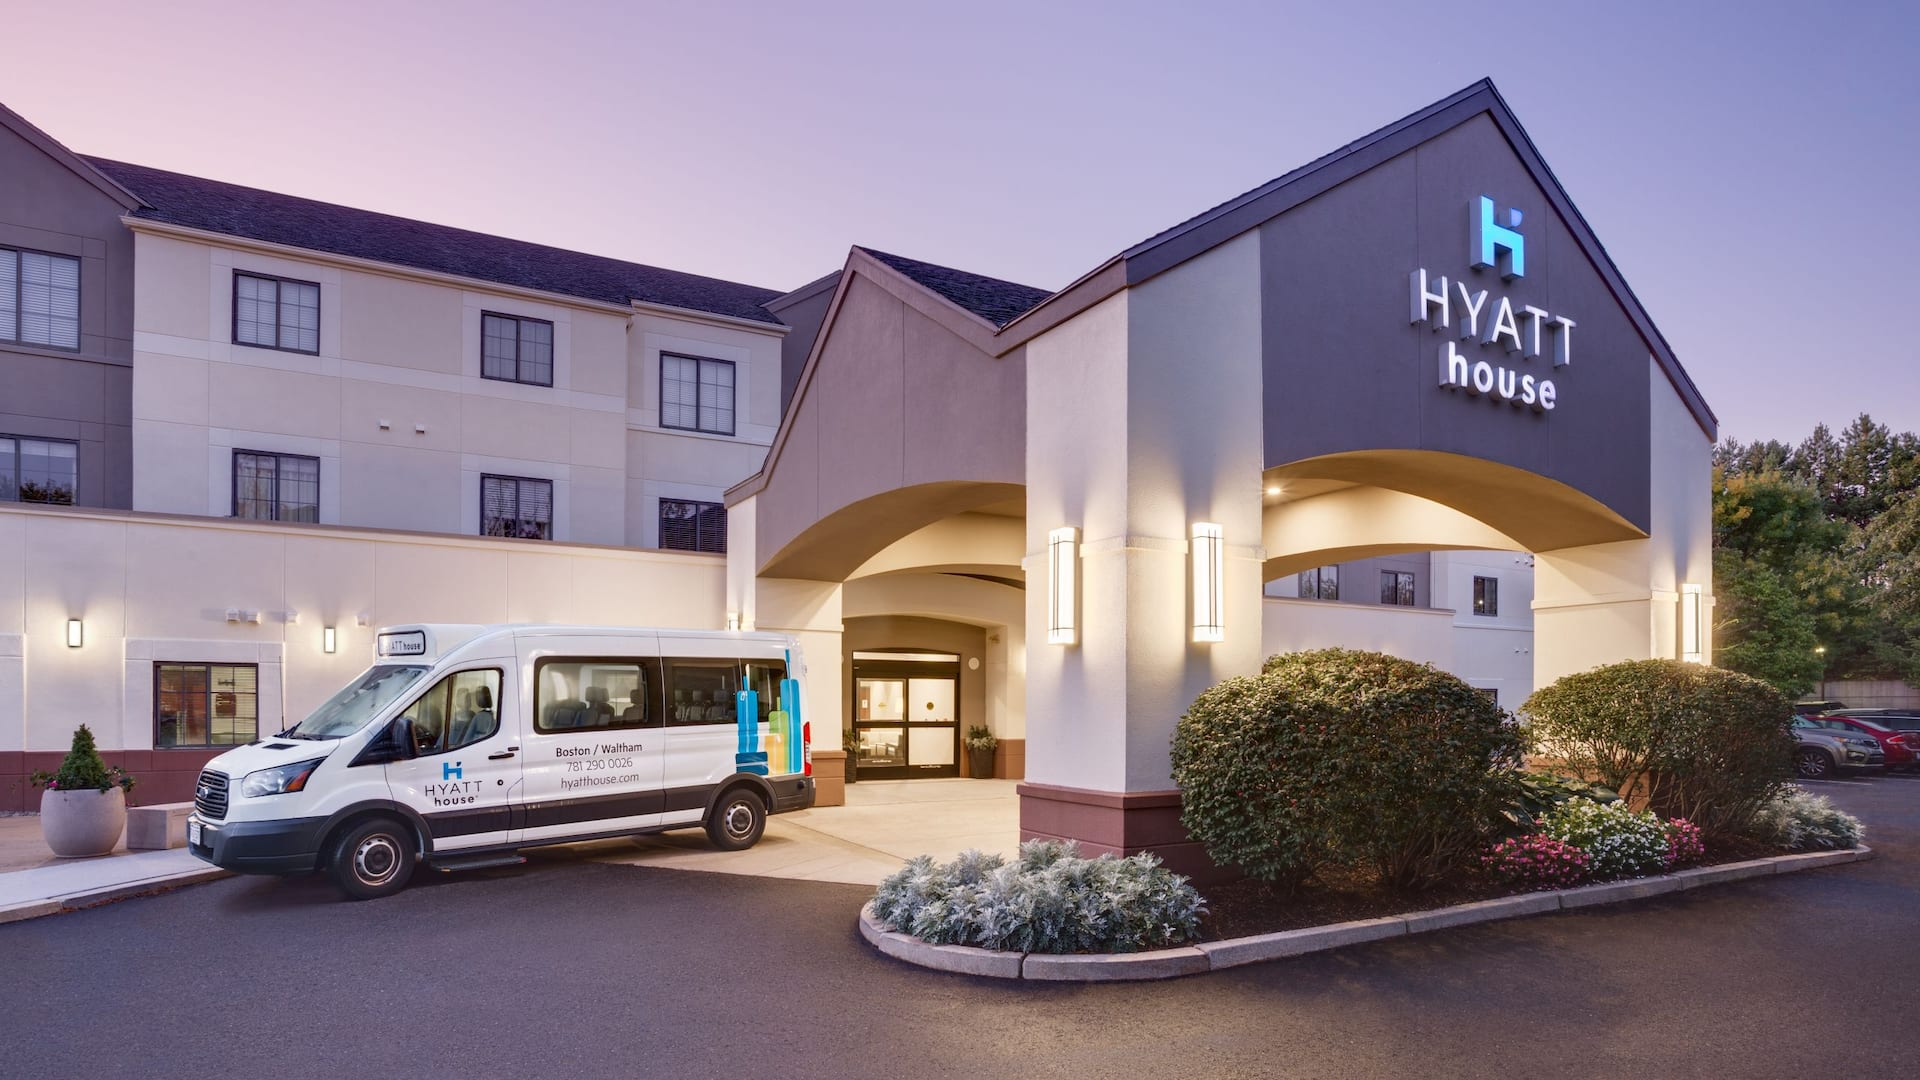 Hyatt House Boston Waltham Exterior Shuttle